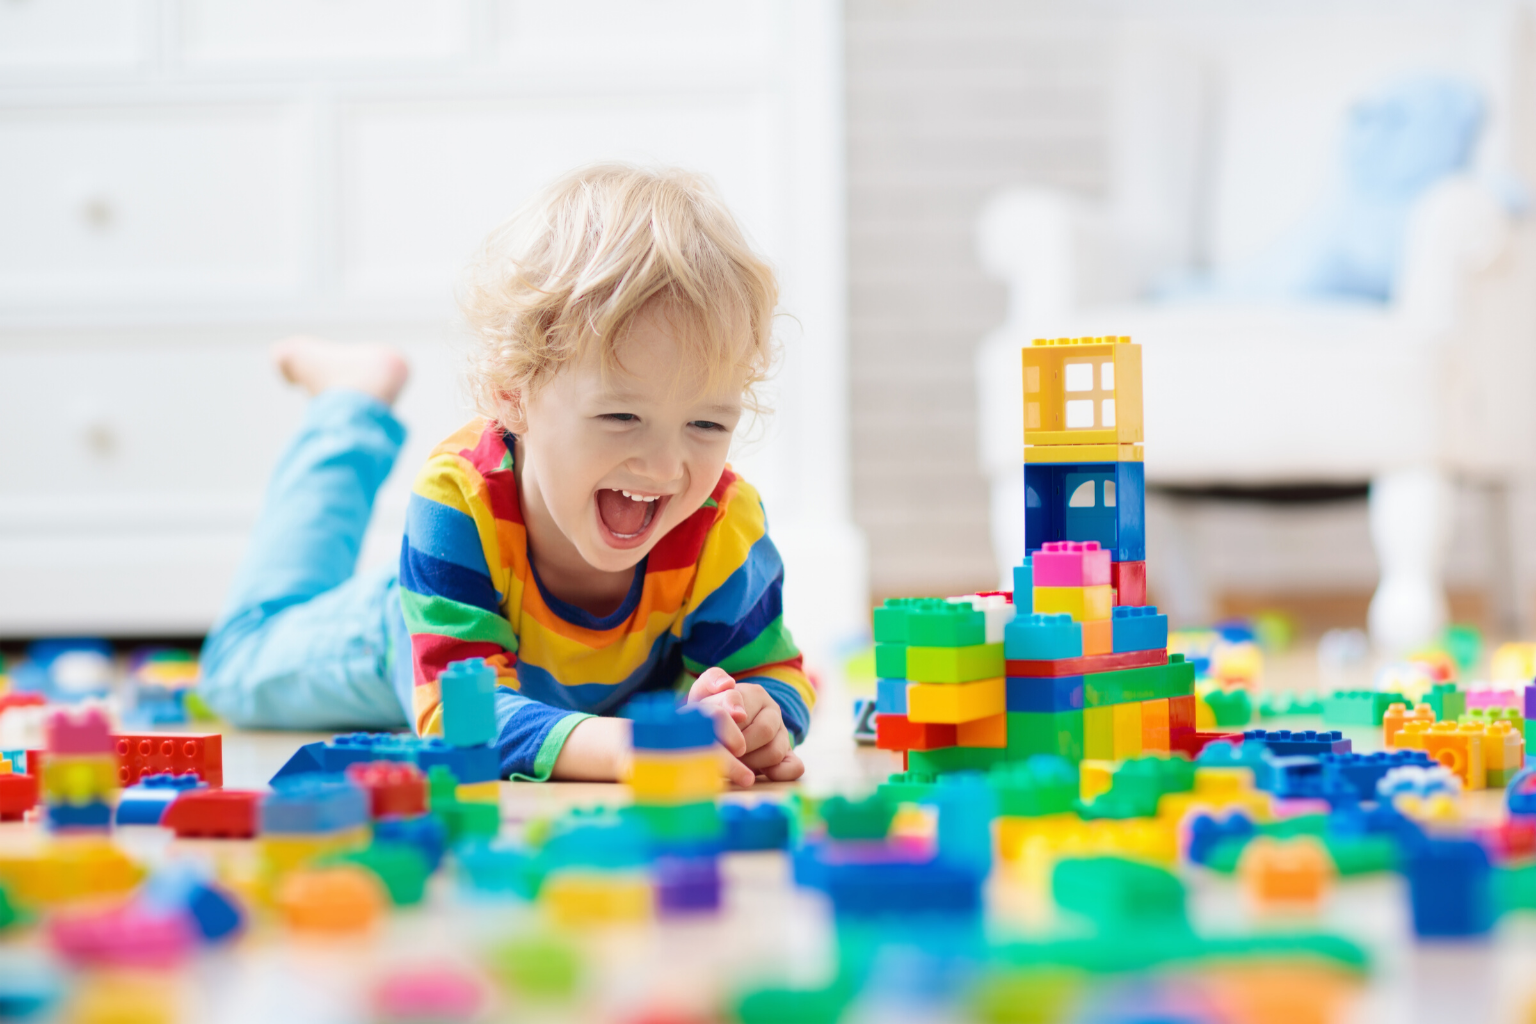 toddler playing with educational toy building blocks